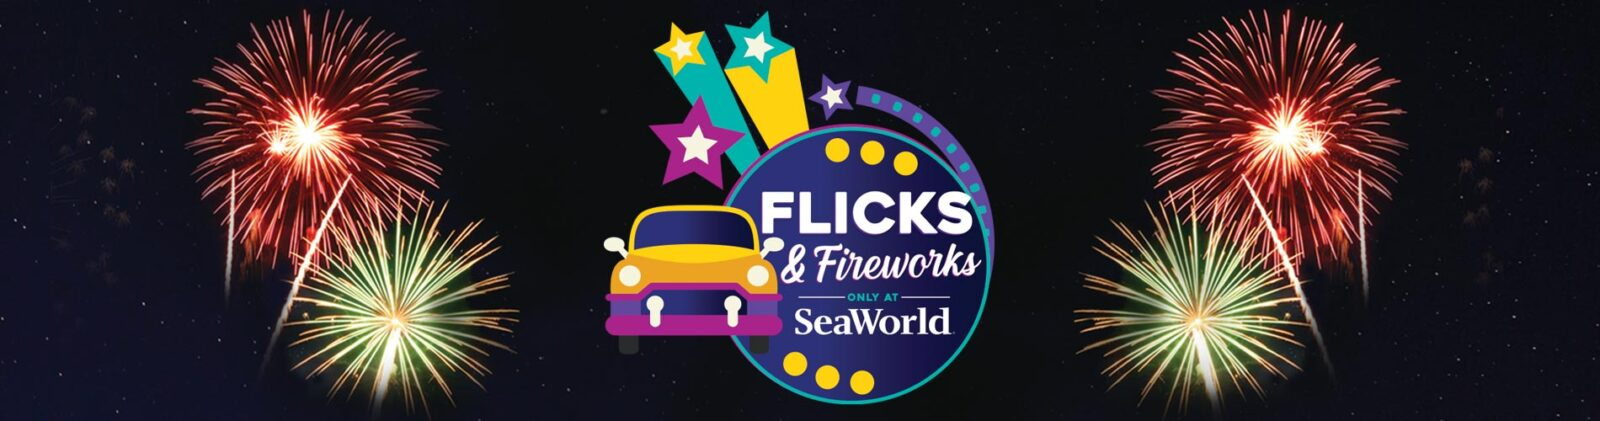 Flicks and Fireworks SeaWorld Orlando 2020